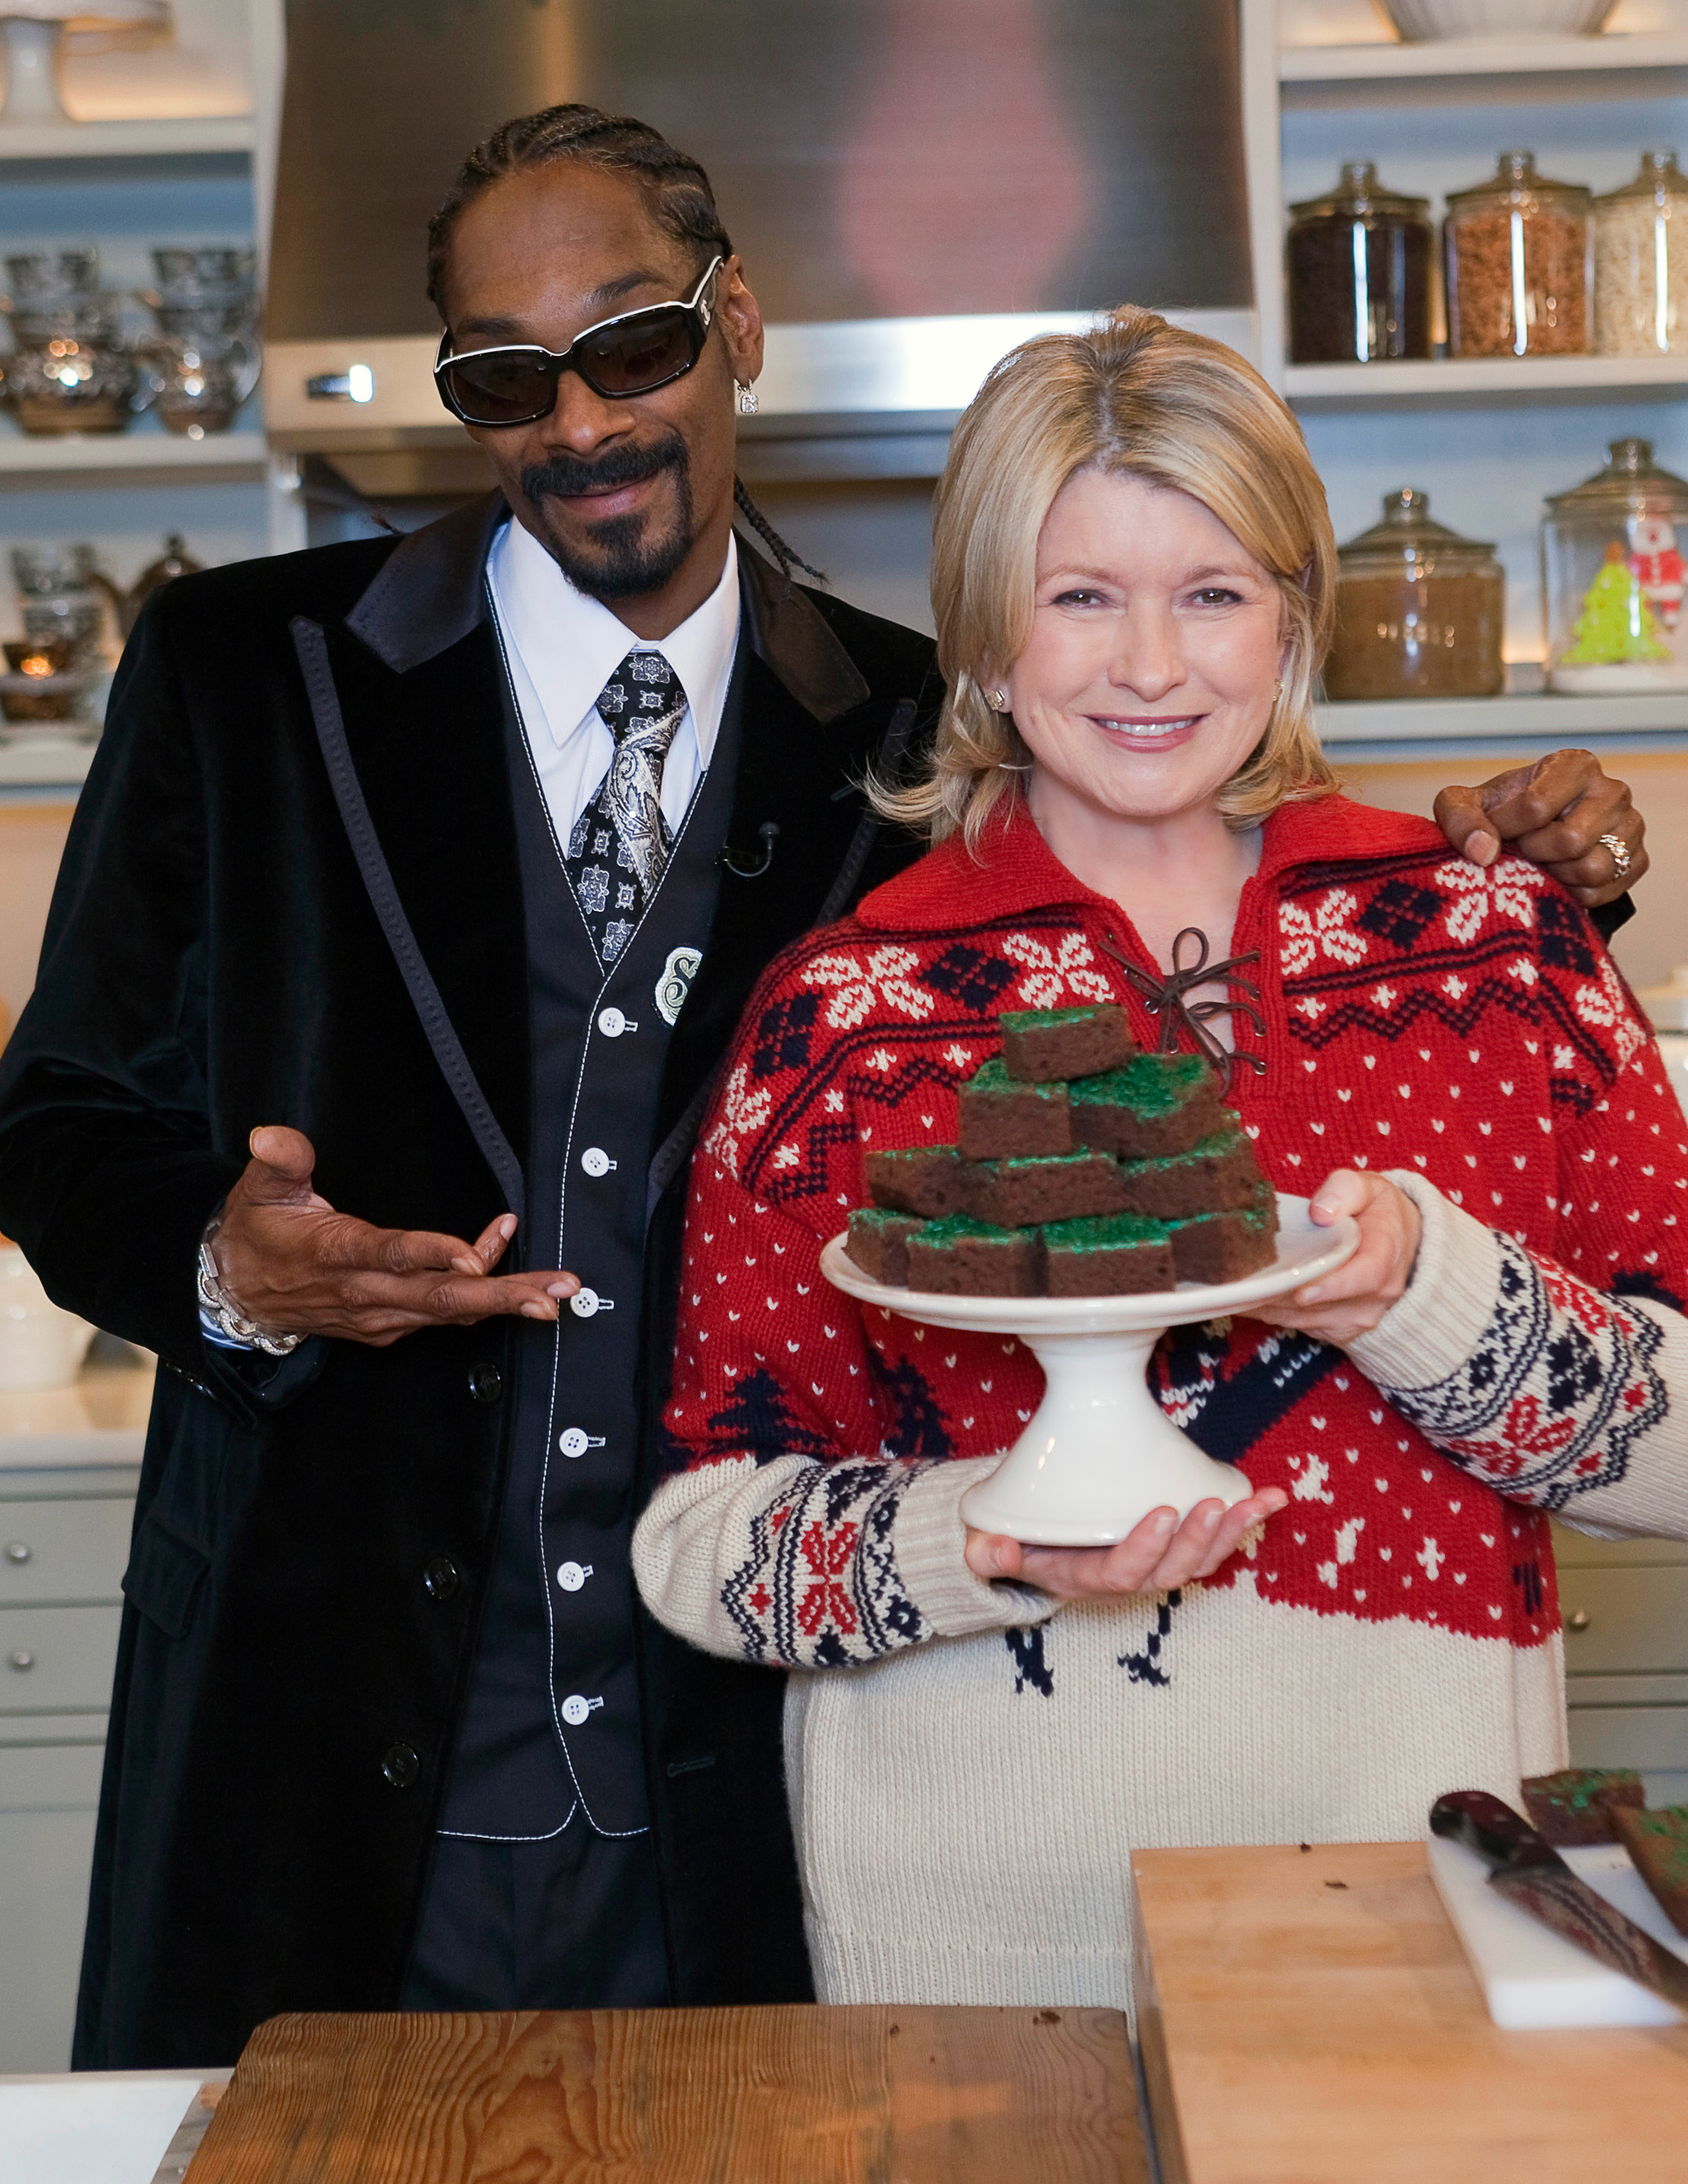 snoop-martha-brownies-9070.jpg